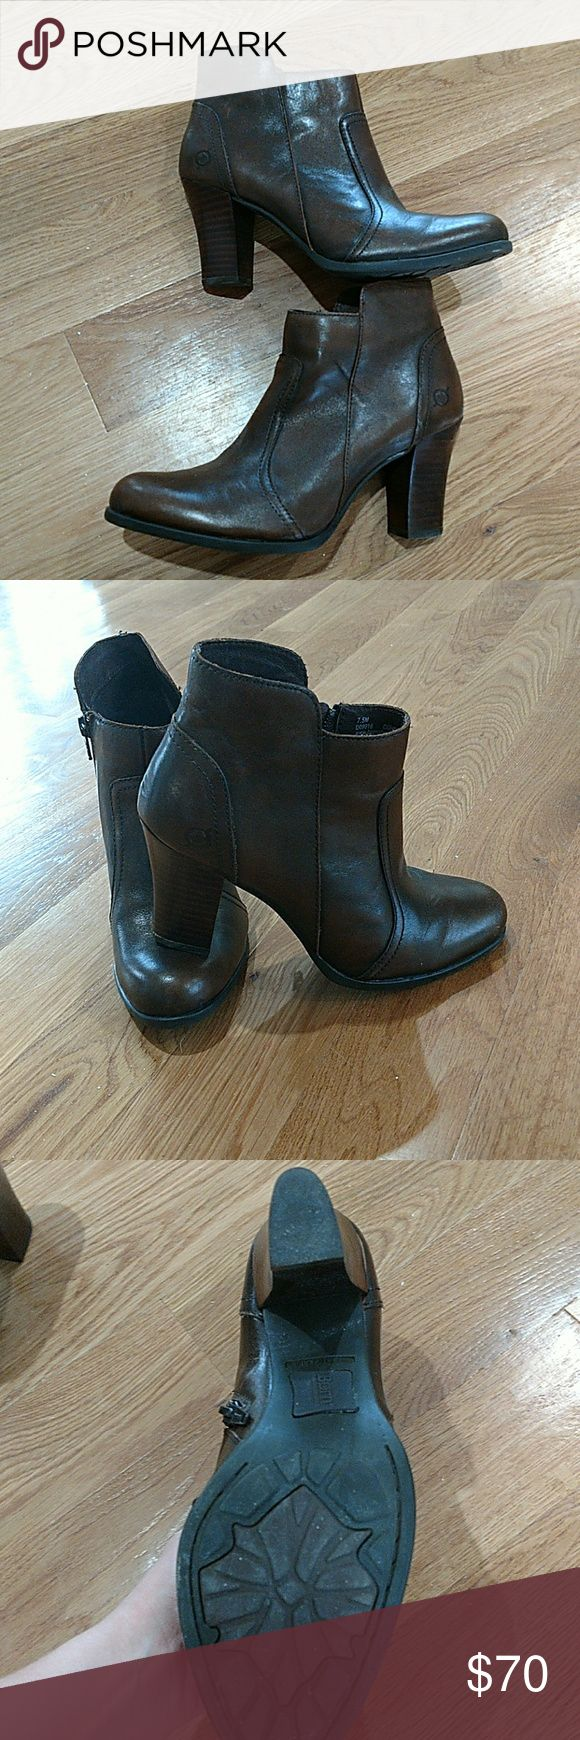 Born ankle boots Gorgeous high heeled ankle boots only worn a couple of times in excellent condition Born Shoes Ankle Boots & Booties